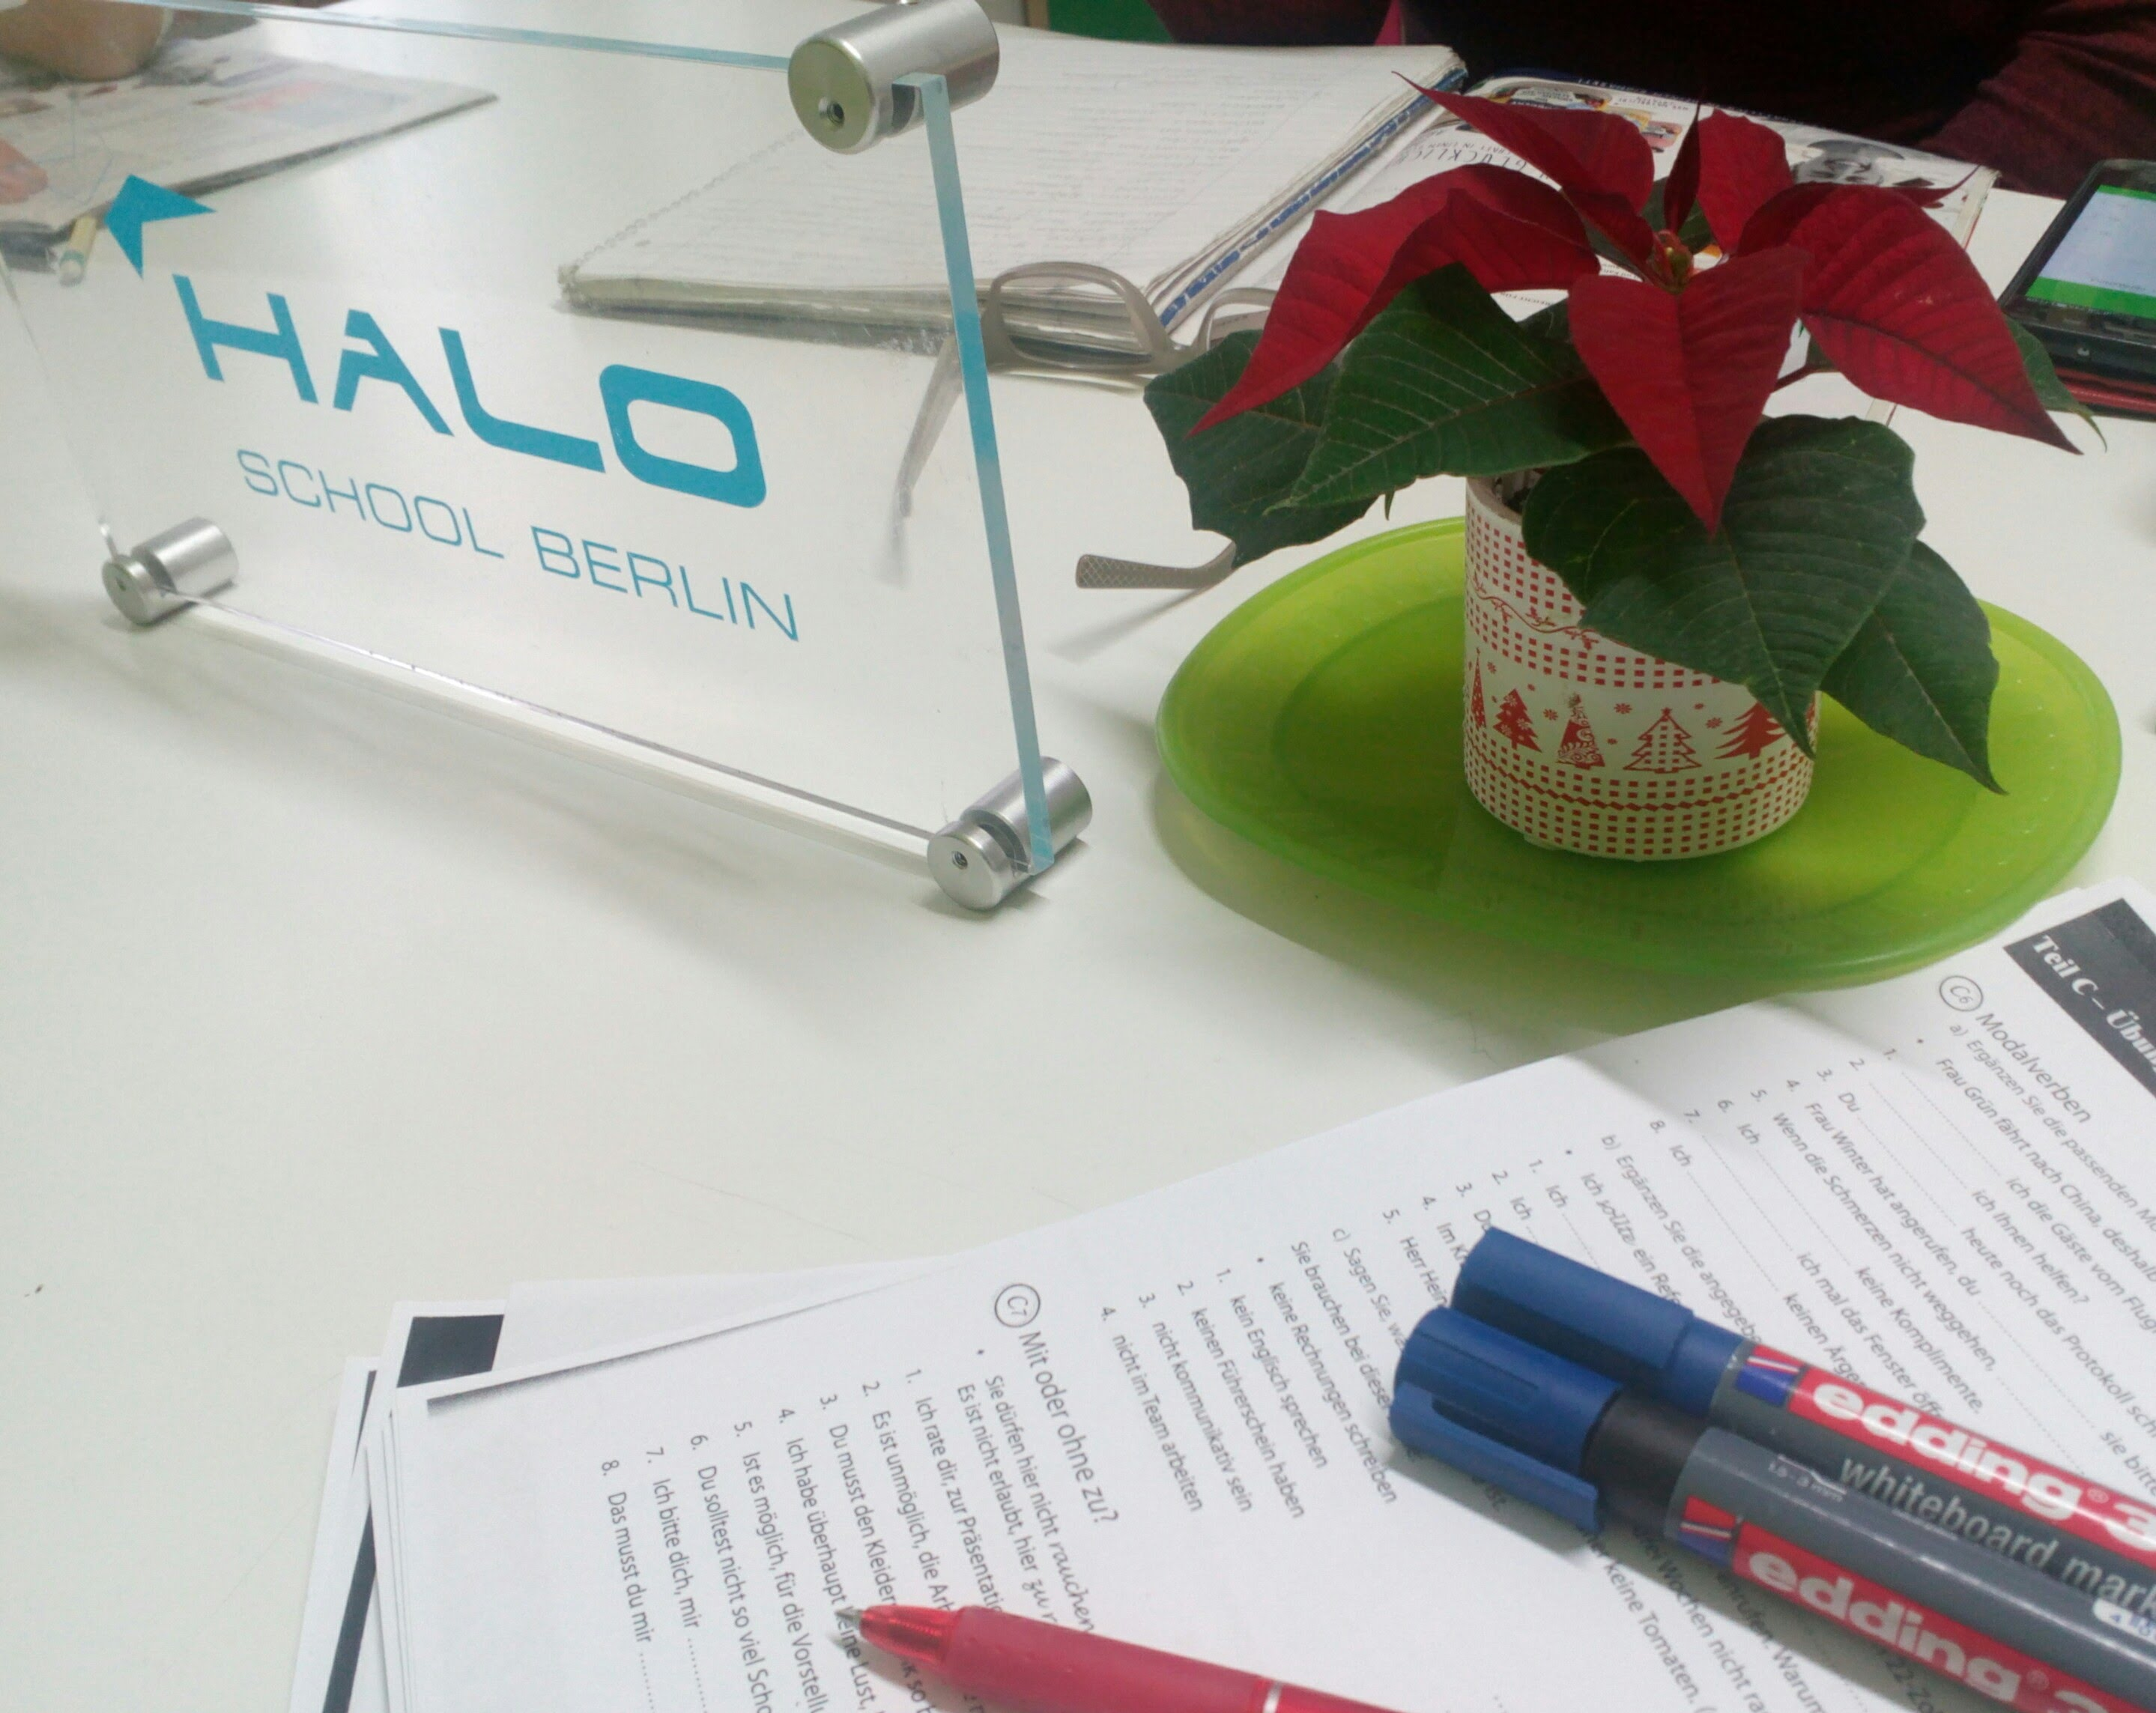 HALO - German Language Courses - Berlin Charlottenburg Wilmersdorf  HALO SCHOOL in Berlin Charlottenburg Wilmersdorf. German language courses in A1, A2, B2, B2, C1, C2 levels, examen preparations for Telc, DaF & Goethe certificates. Tailor-made language individual classes for business, university and work in Germany